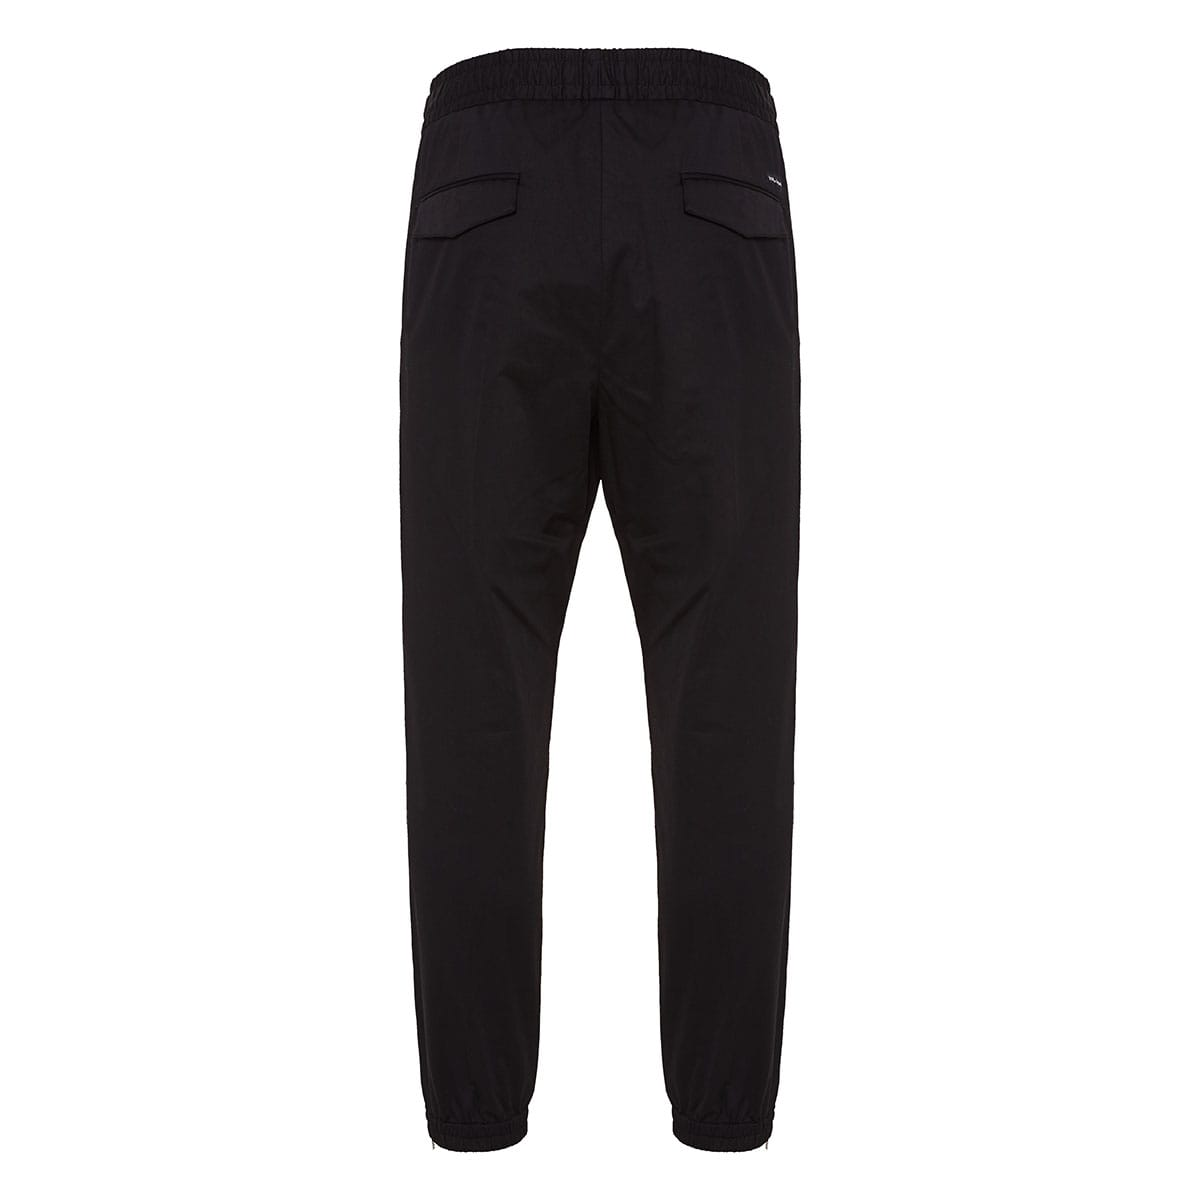 Track-style cotton trousers